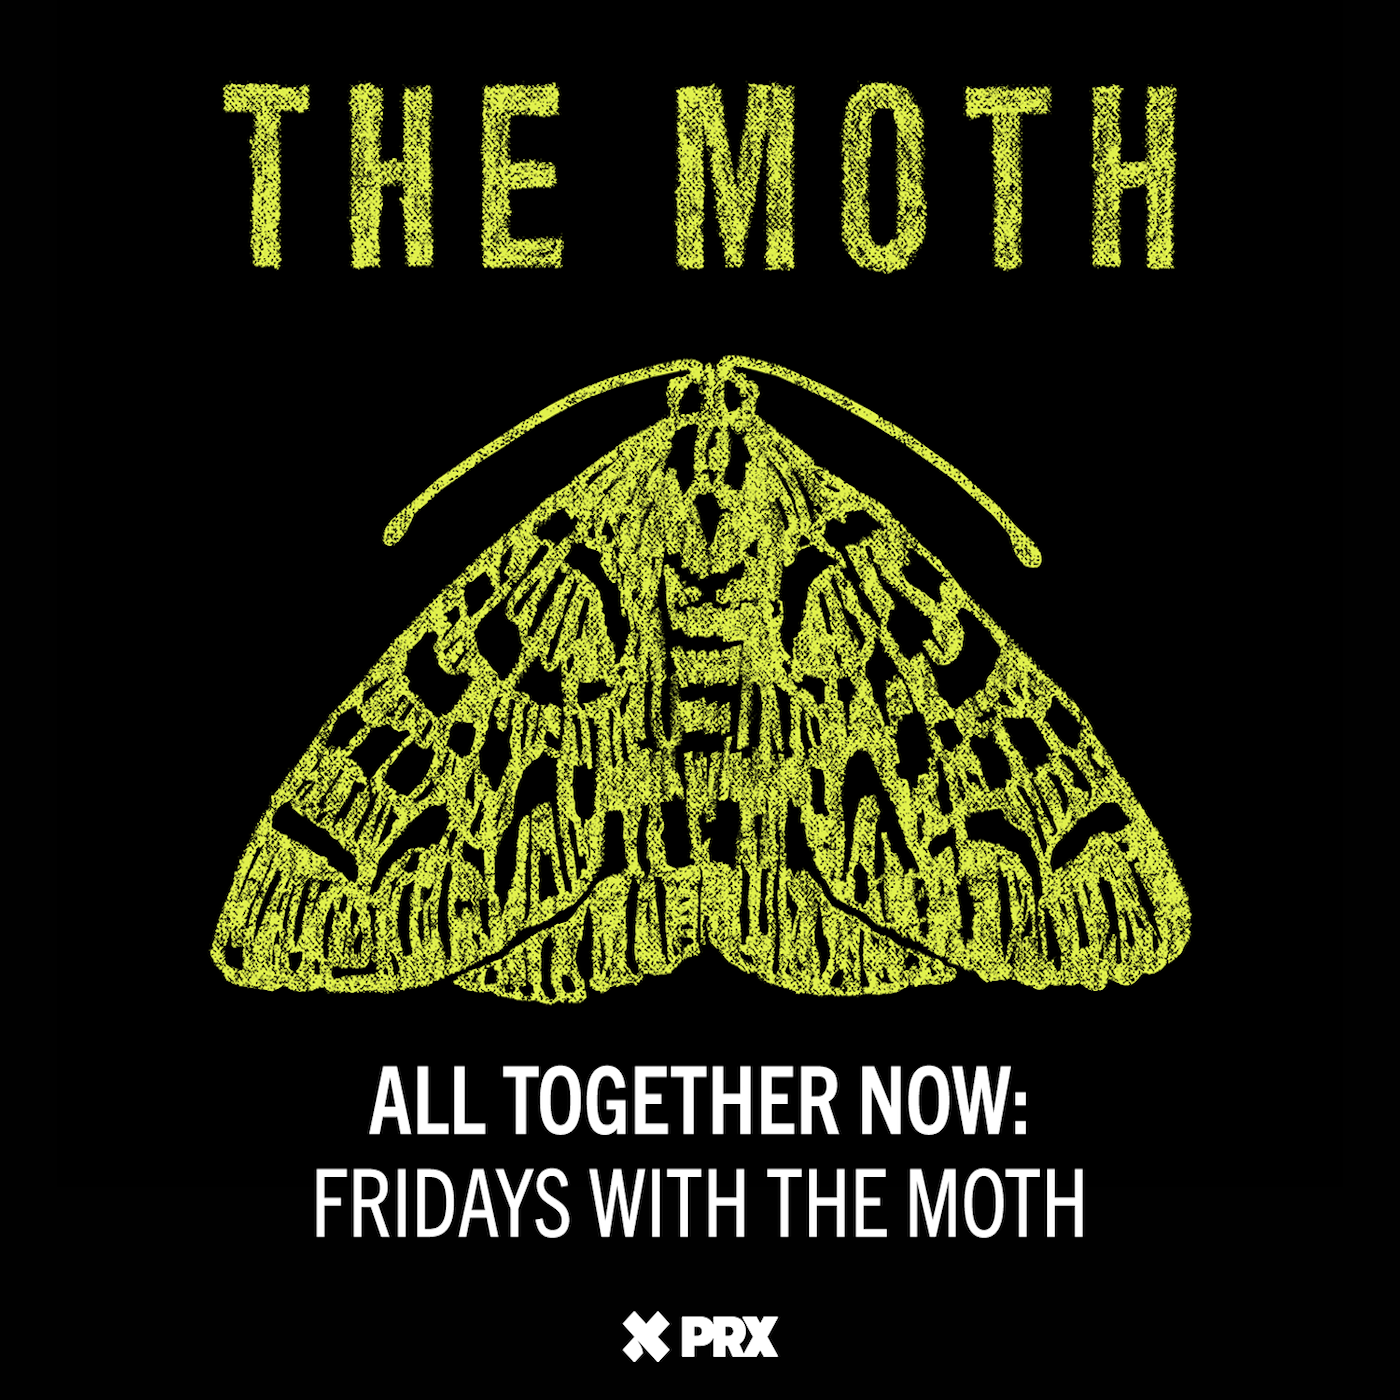 All Together Now: Fridays with The Moth - Nina McConigley